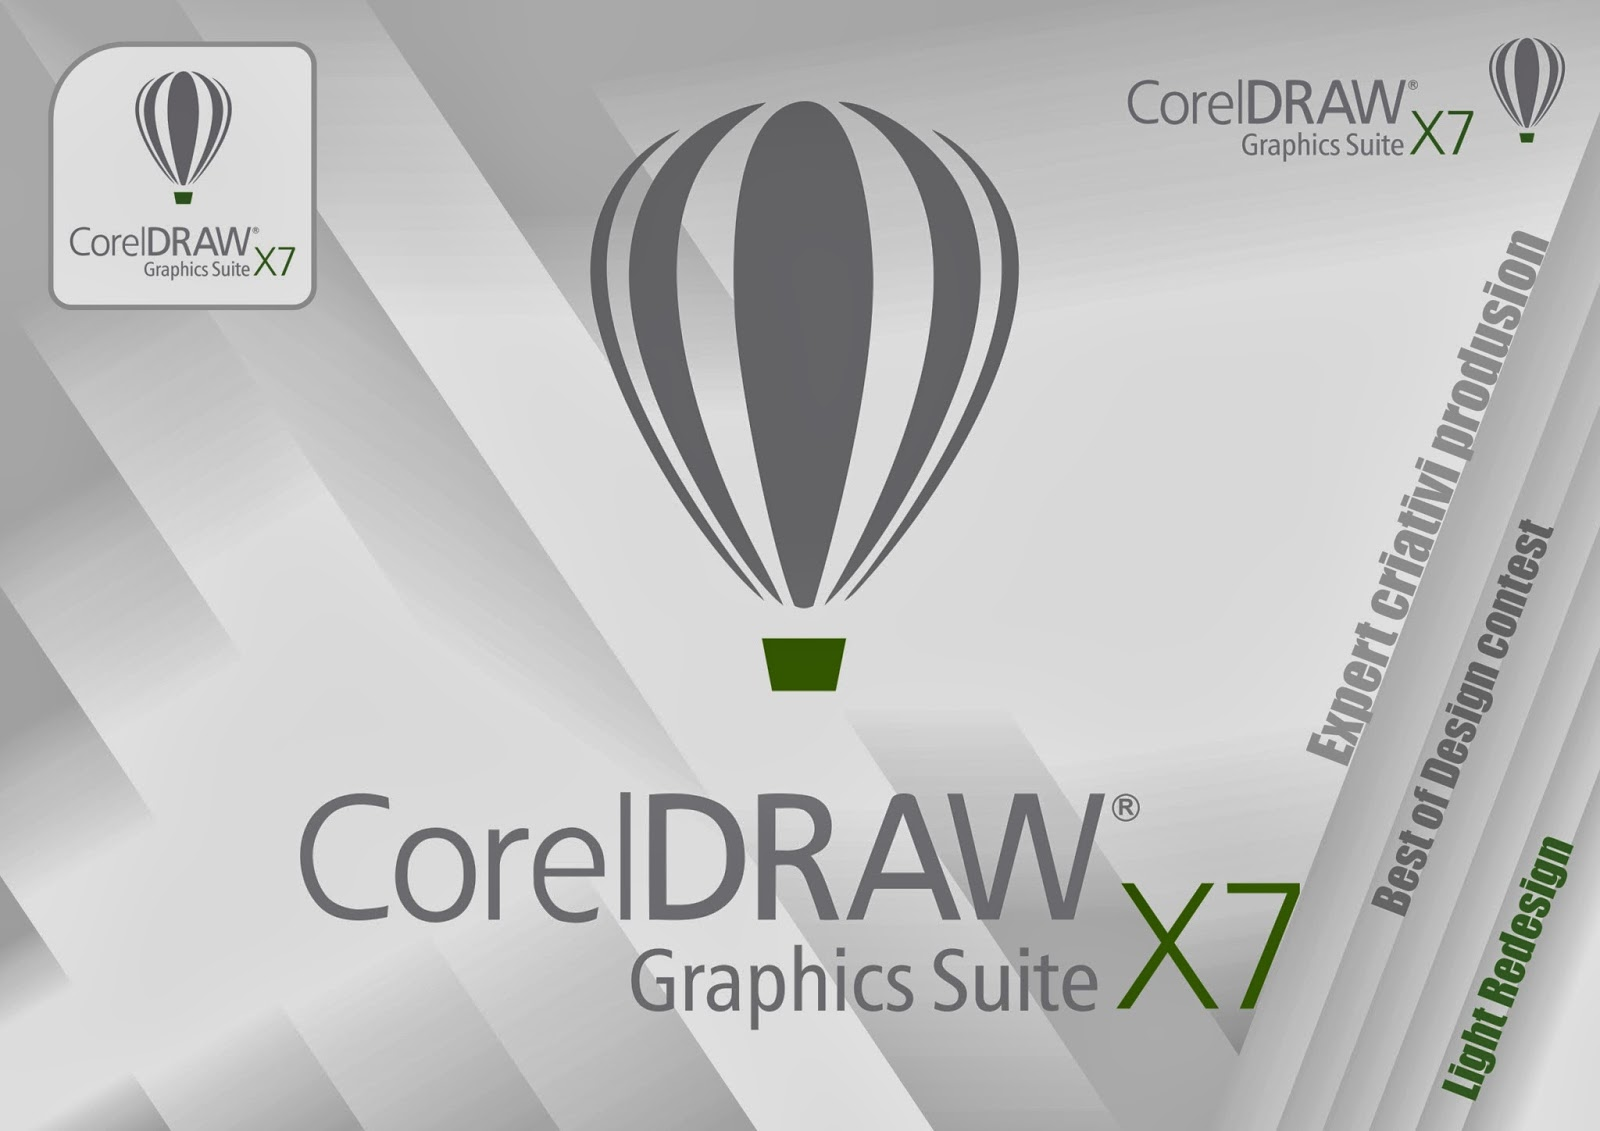 Corel draw version - Coreldraw Graphics Suite X7 Video Tour